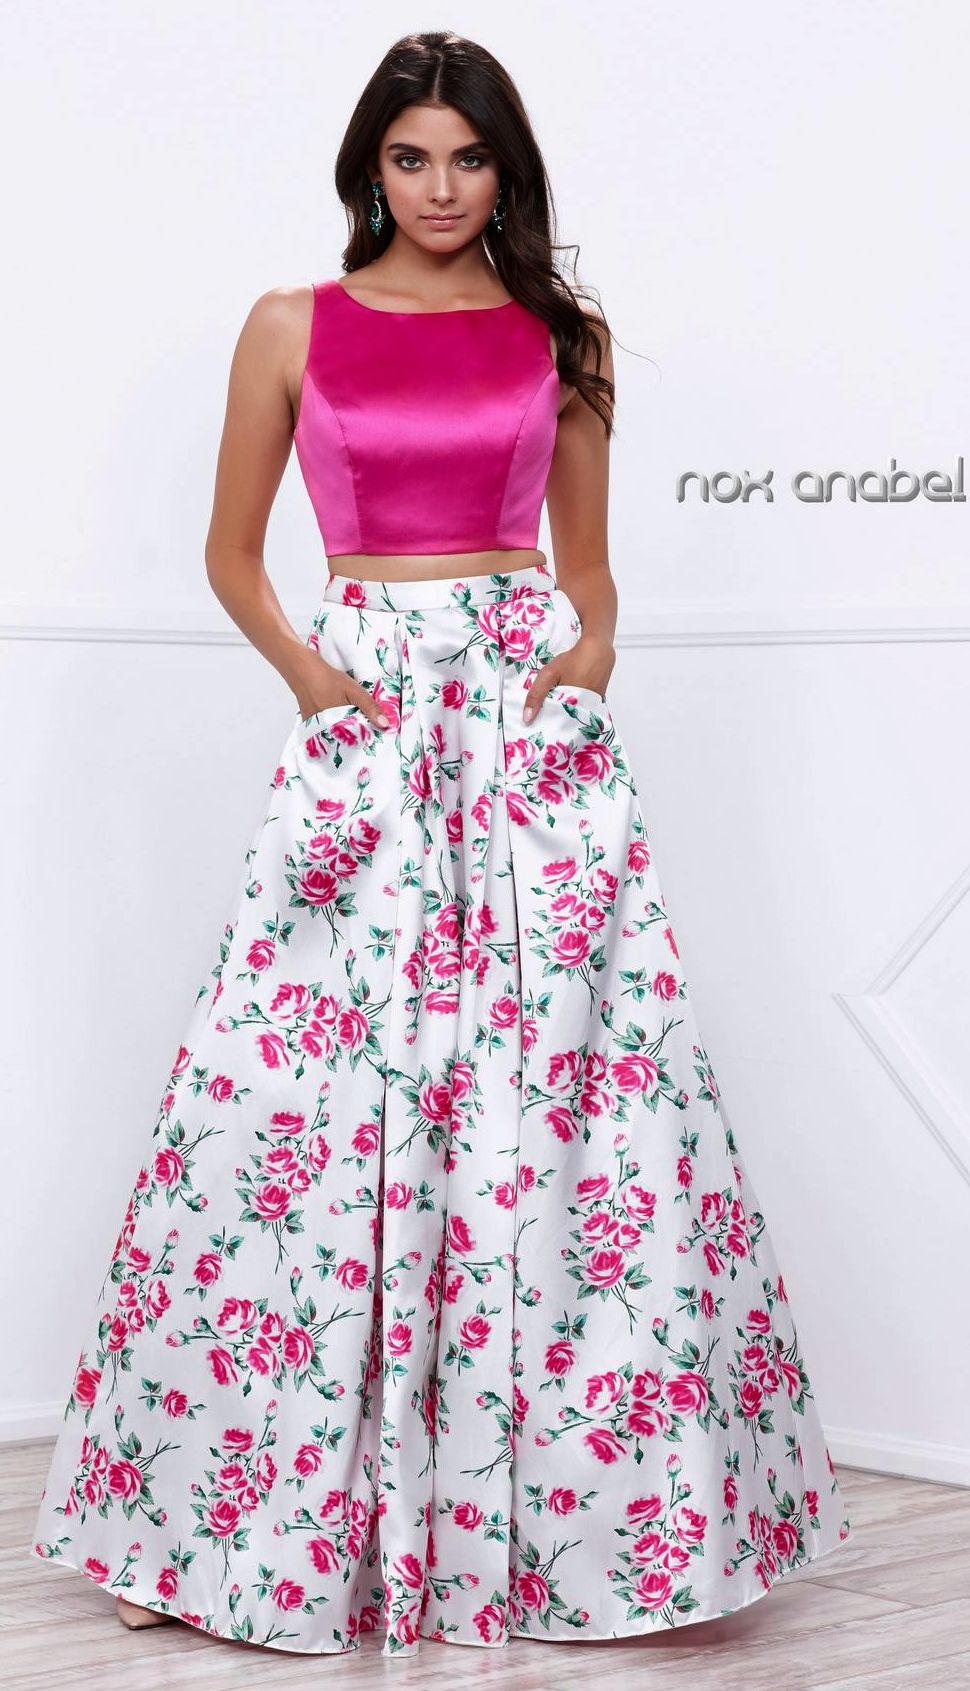 eaee08f6cf0 Prom Dresses Evening Dresses UNDER  200 BR ana8331 BR Two piece with solid  fuchsia bateau neckline crop top and floral print floor length skirt!